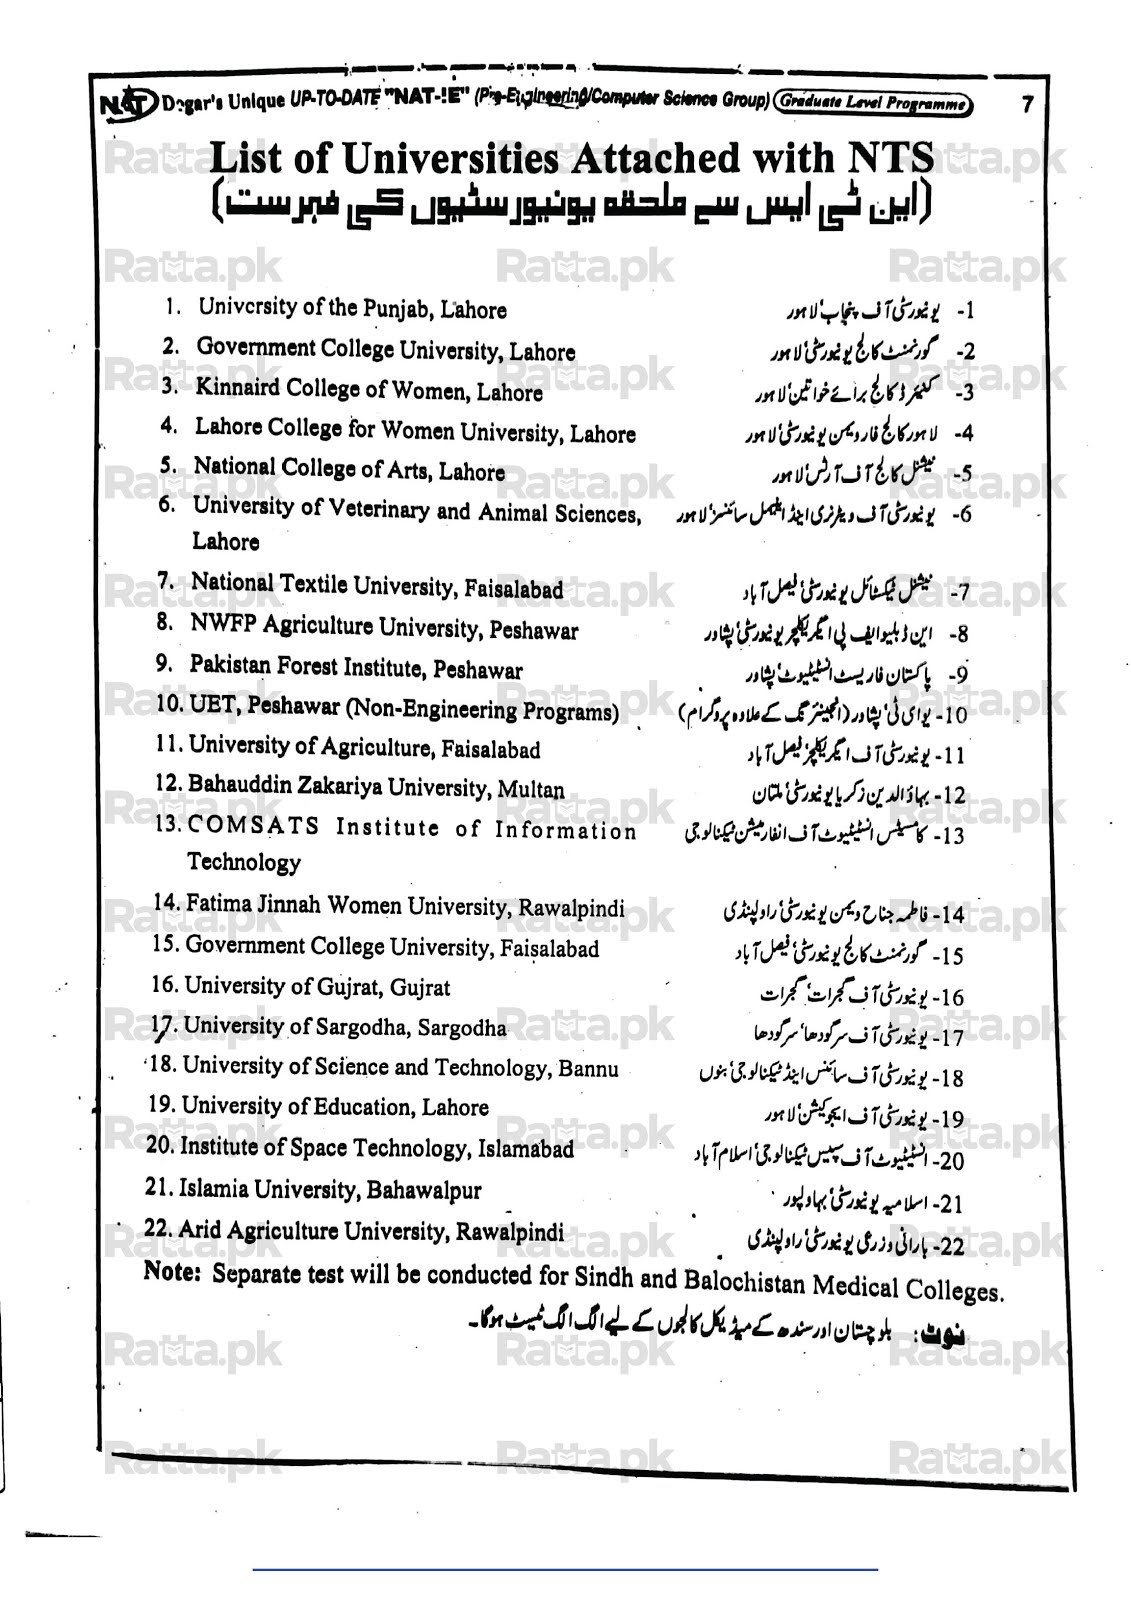 List of Universities Attached with NTS